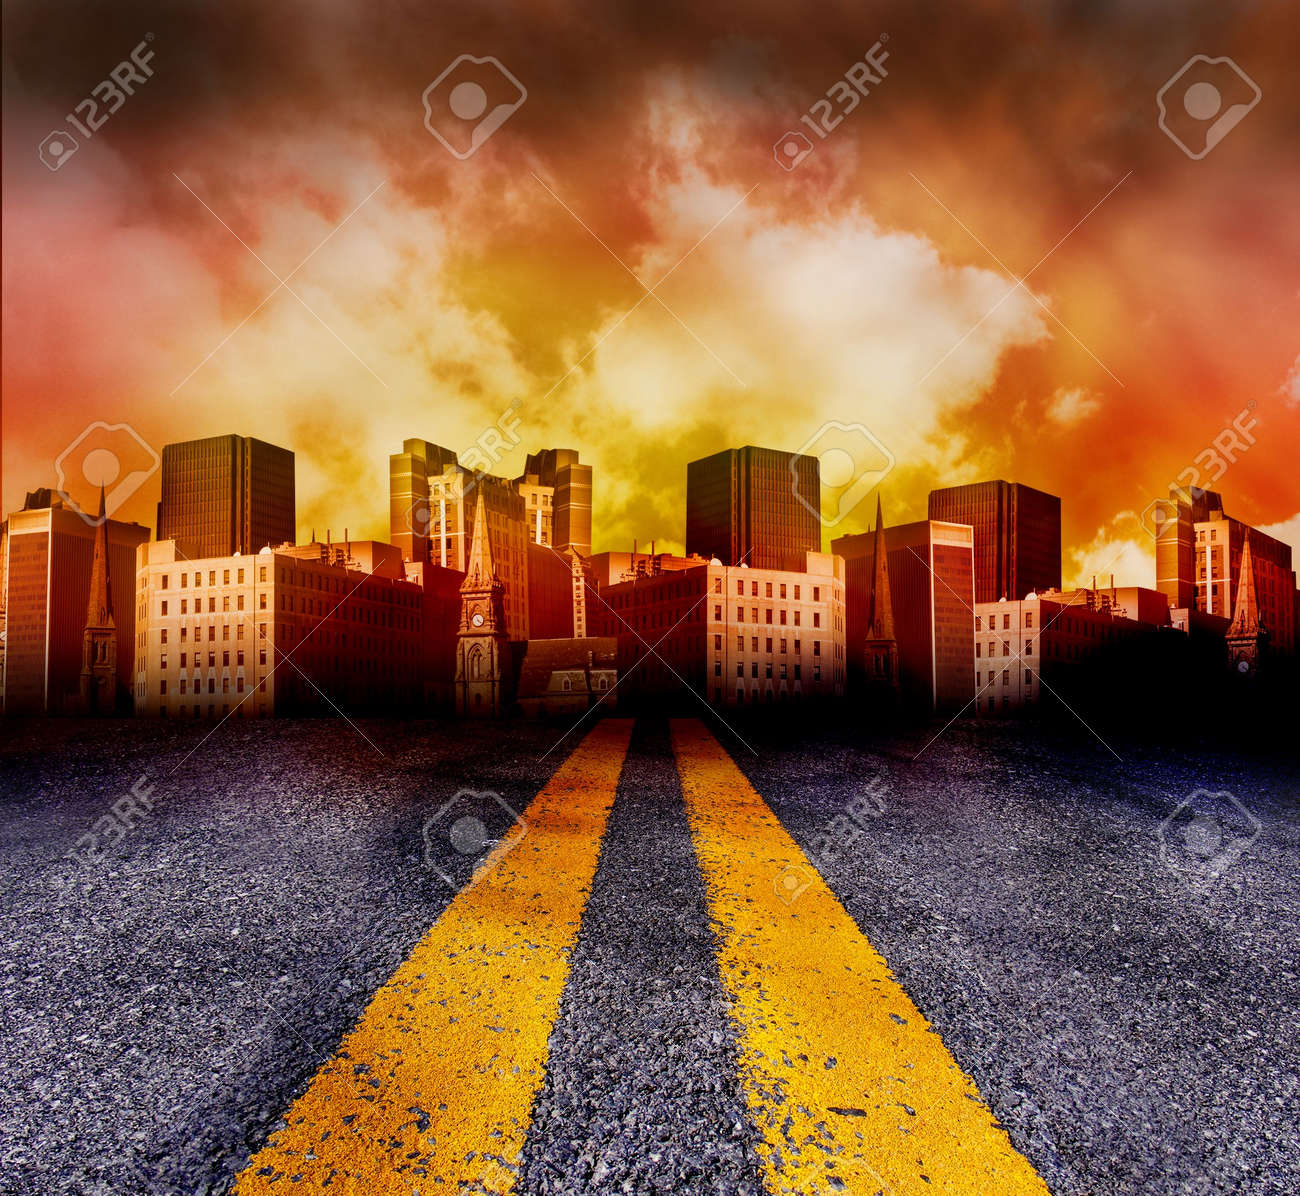 A double yellow line road is leading to a city with a red and yellow sunset in the background. The city is red in color. Stock Photo - 4799686